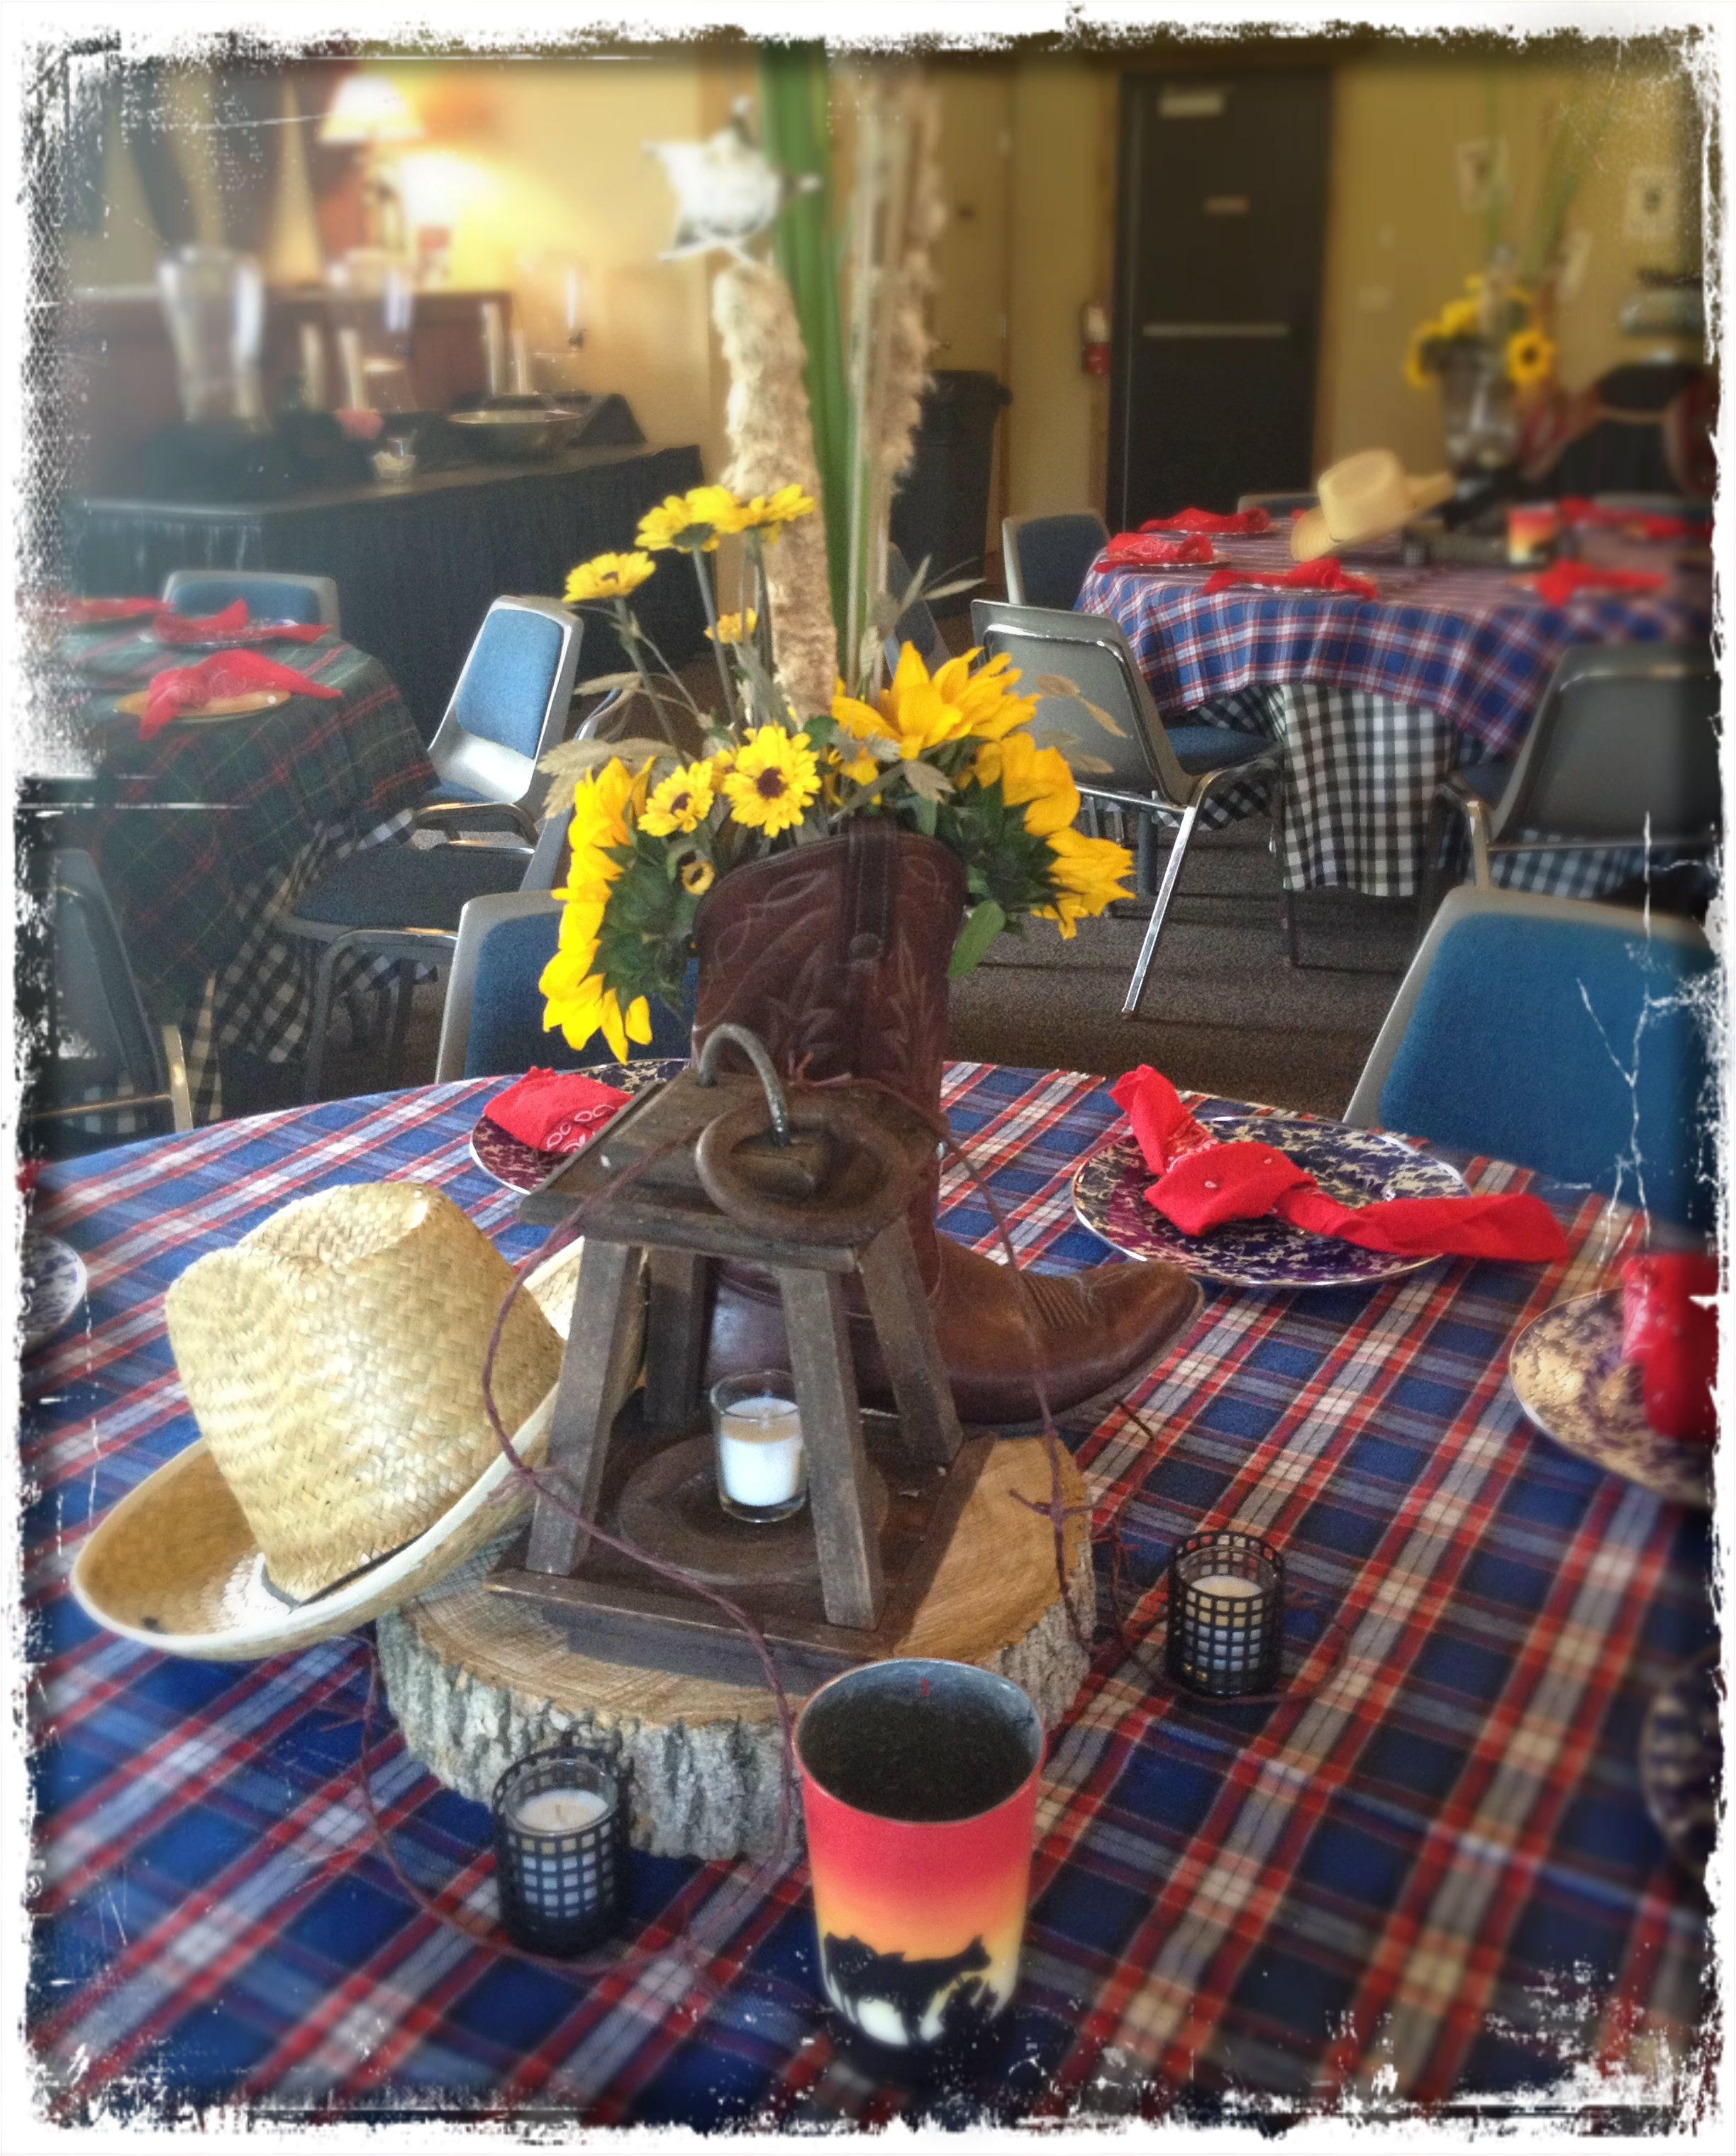 awesome country western themed centerpieces and table settings faulkner s ranch check out all of the detail cowboy hats flowers sheriff badges